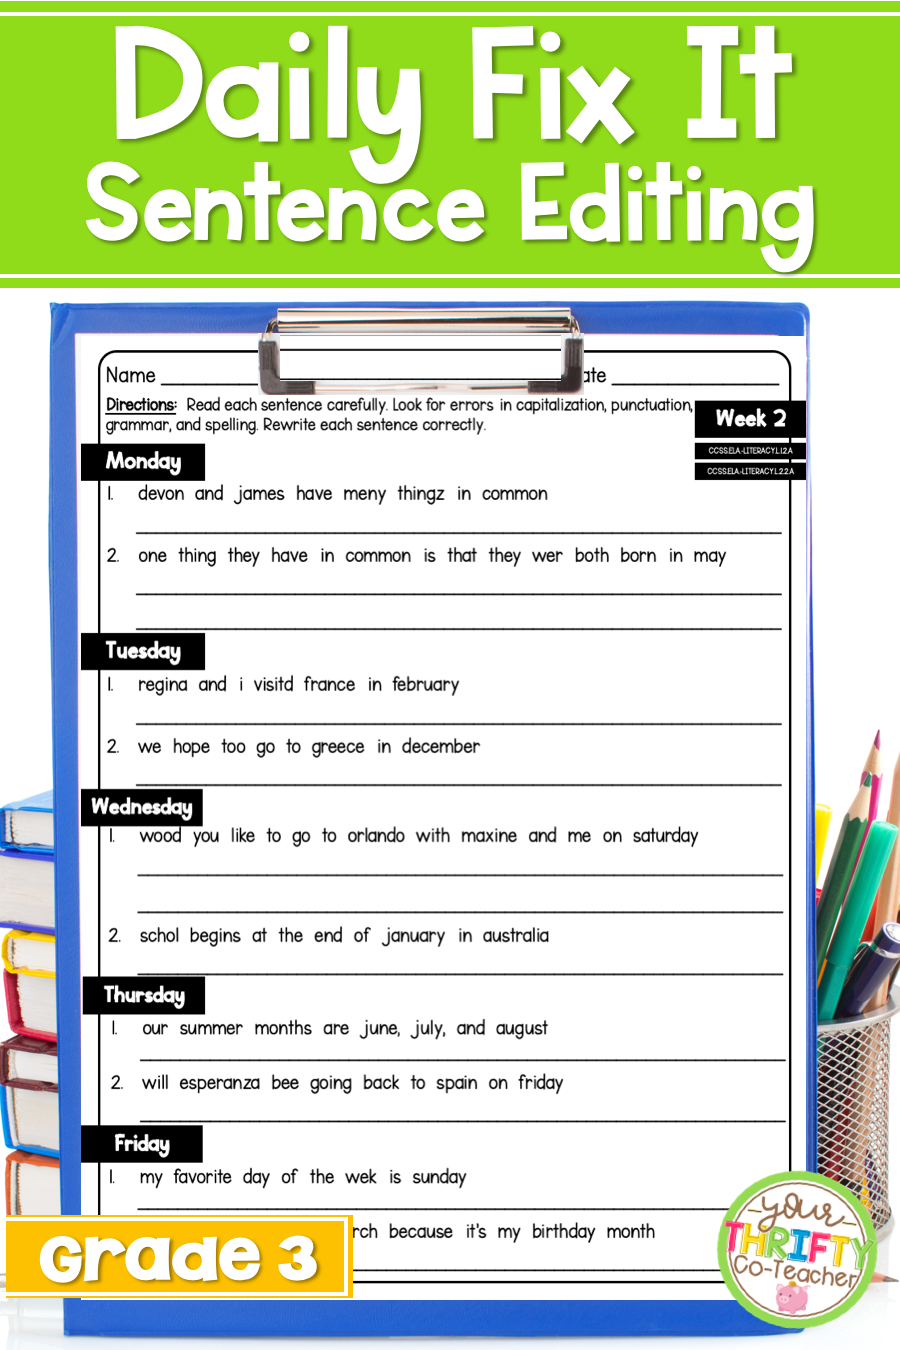 Daily Fix It Sentence Editing For 3rd Grade Sentence Editing Daily Oral Language Sentences [ 1350 x 900 Pixel ]